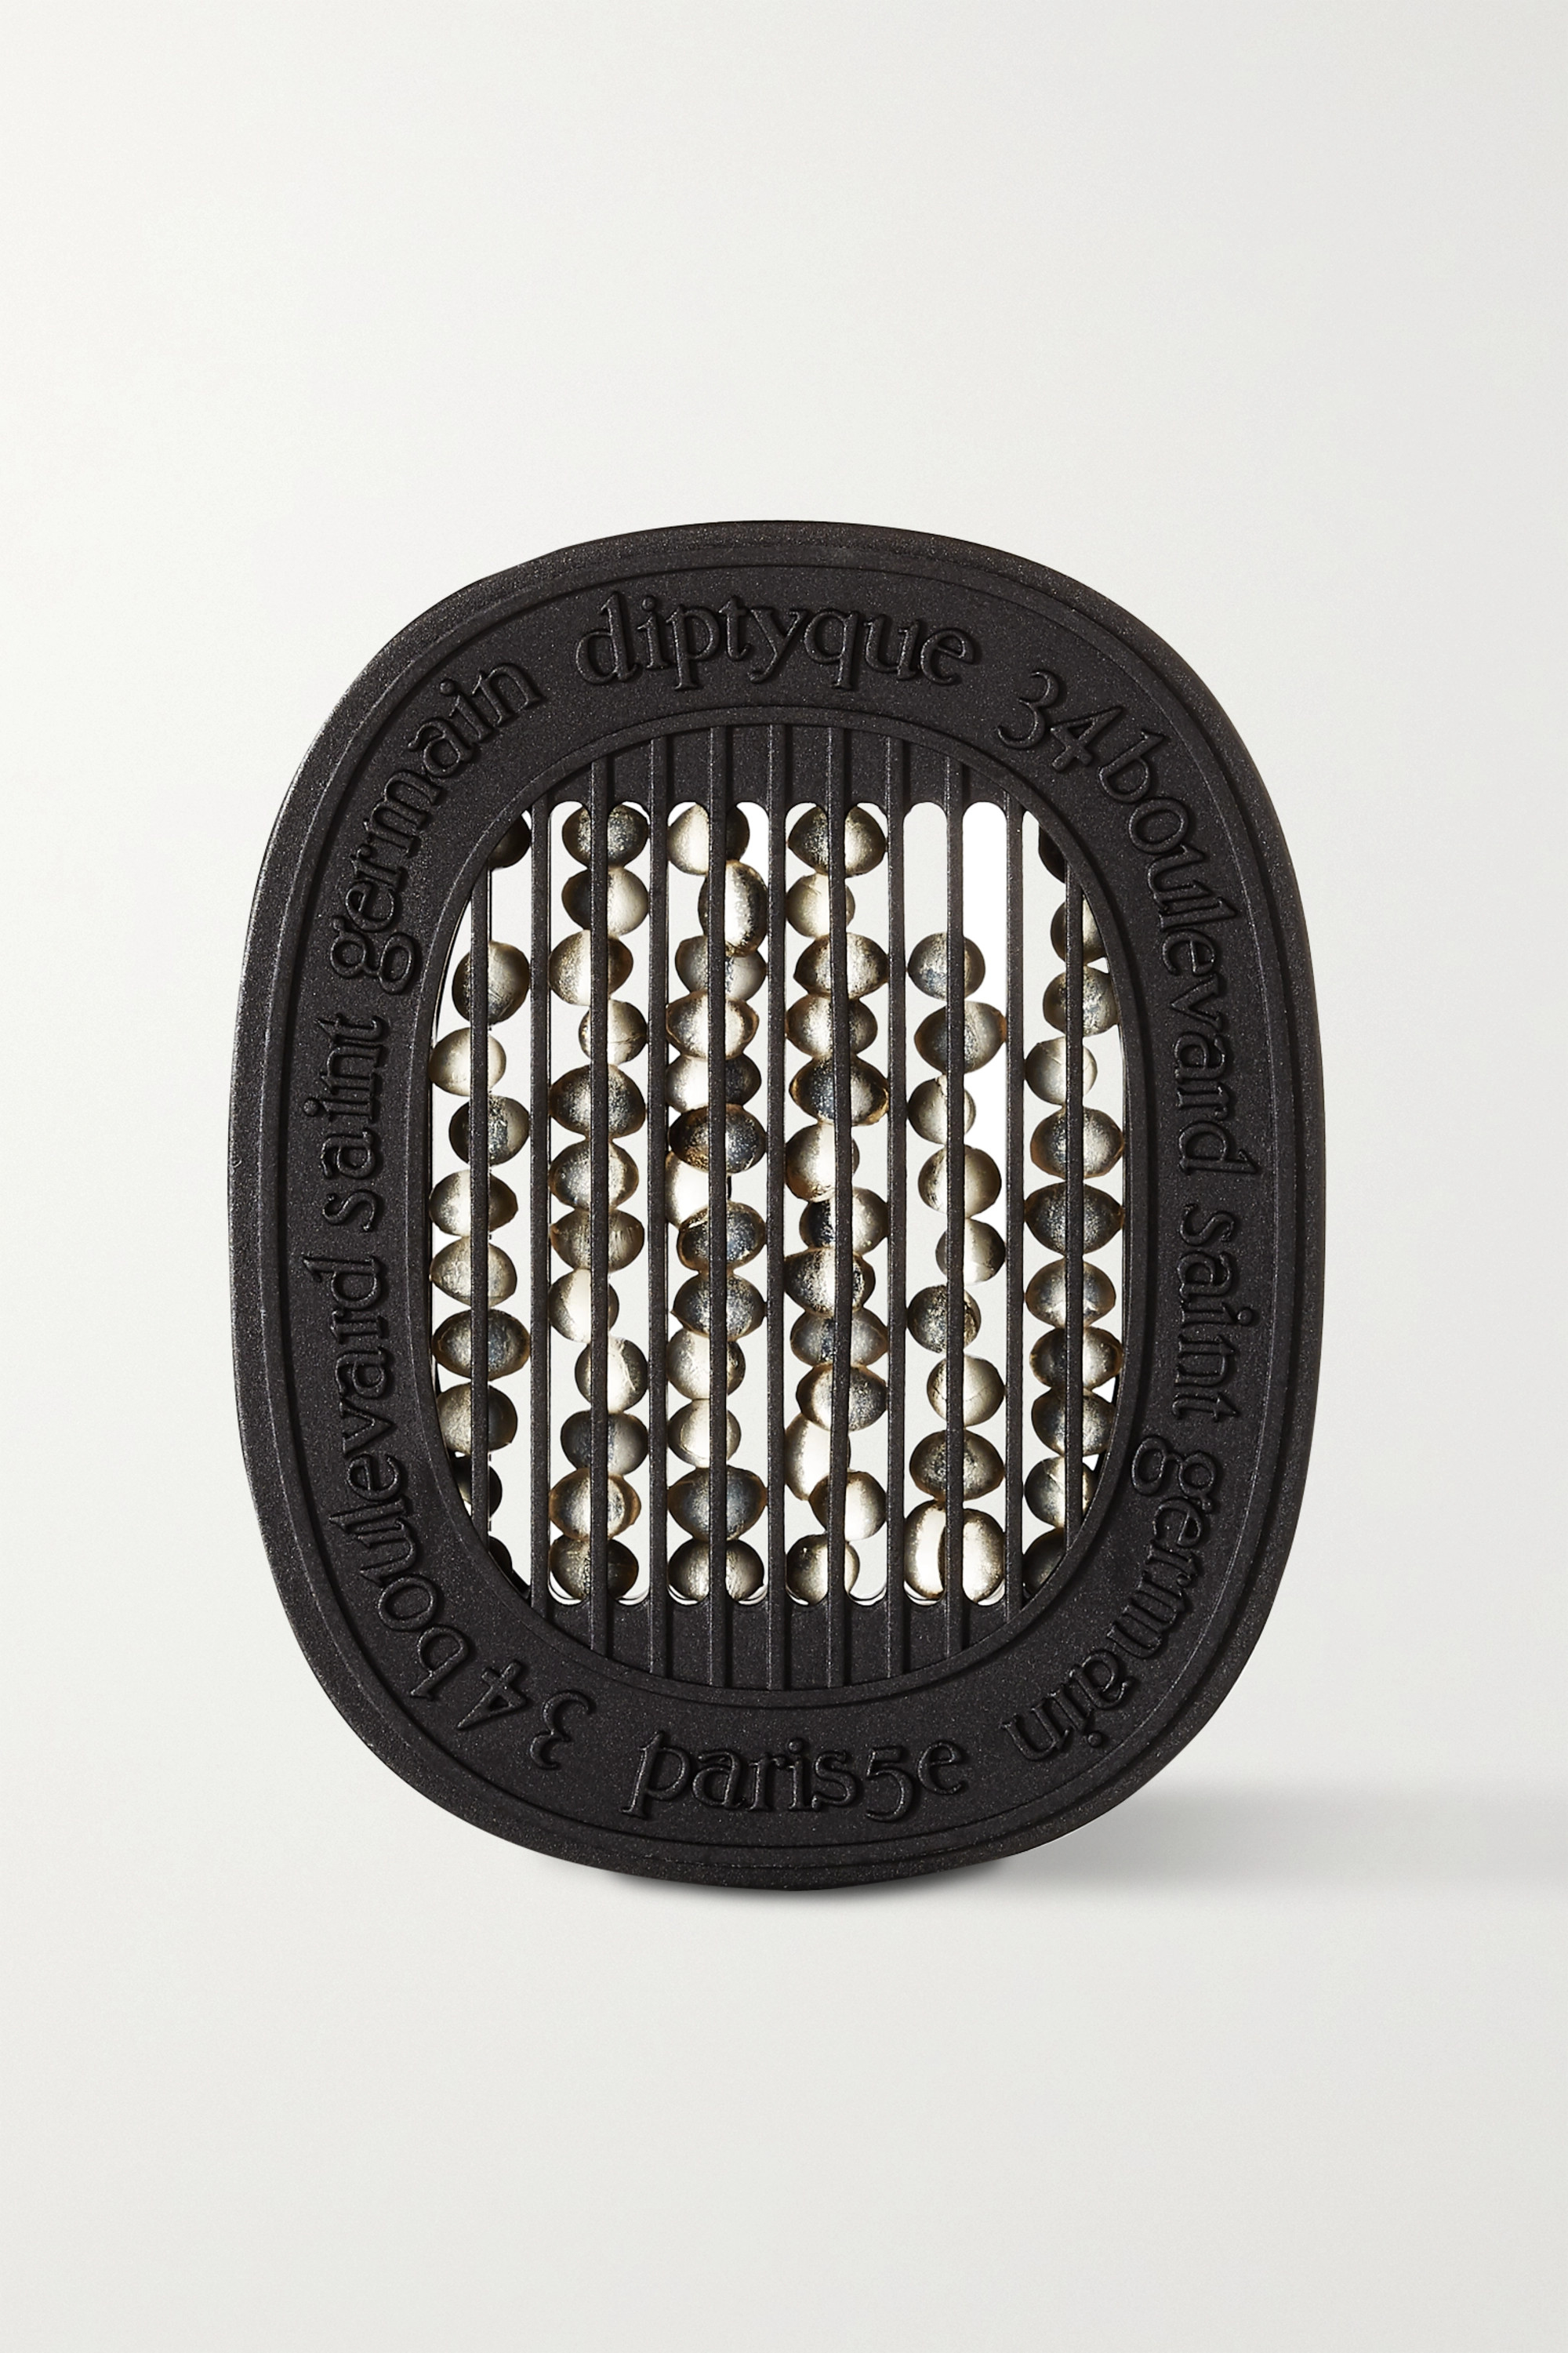 Diptyque Electric Diffuser Capsule - Baies